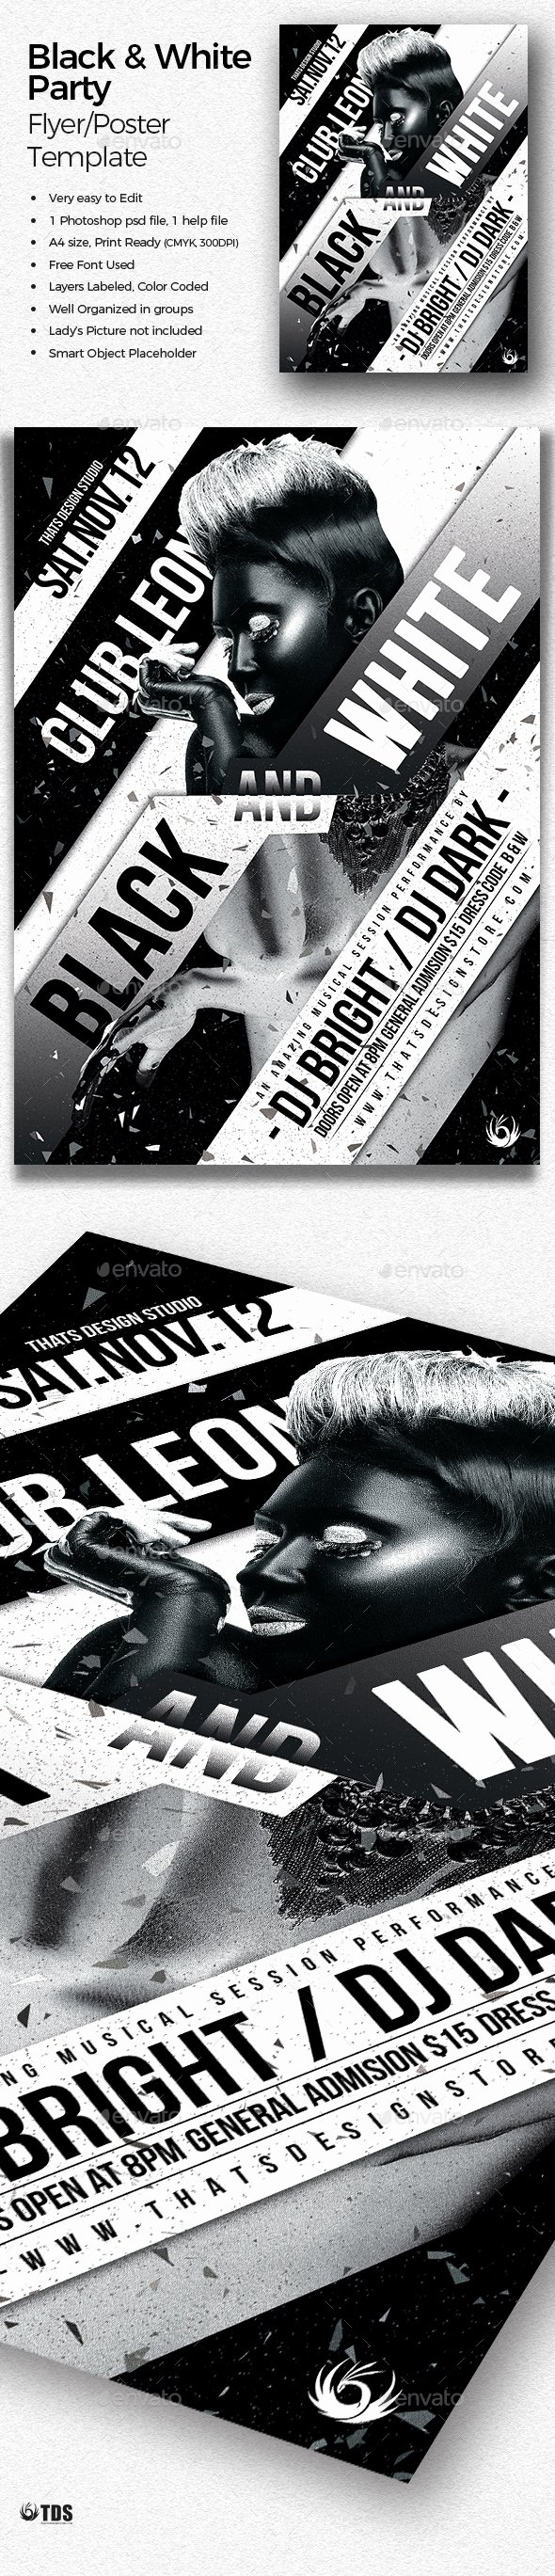 Black and White Party Flyer Template by Lou606